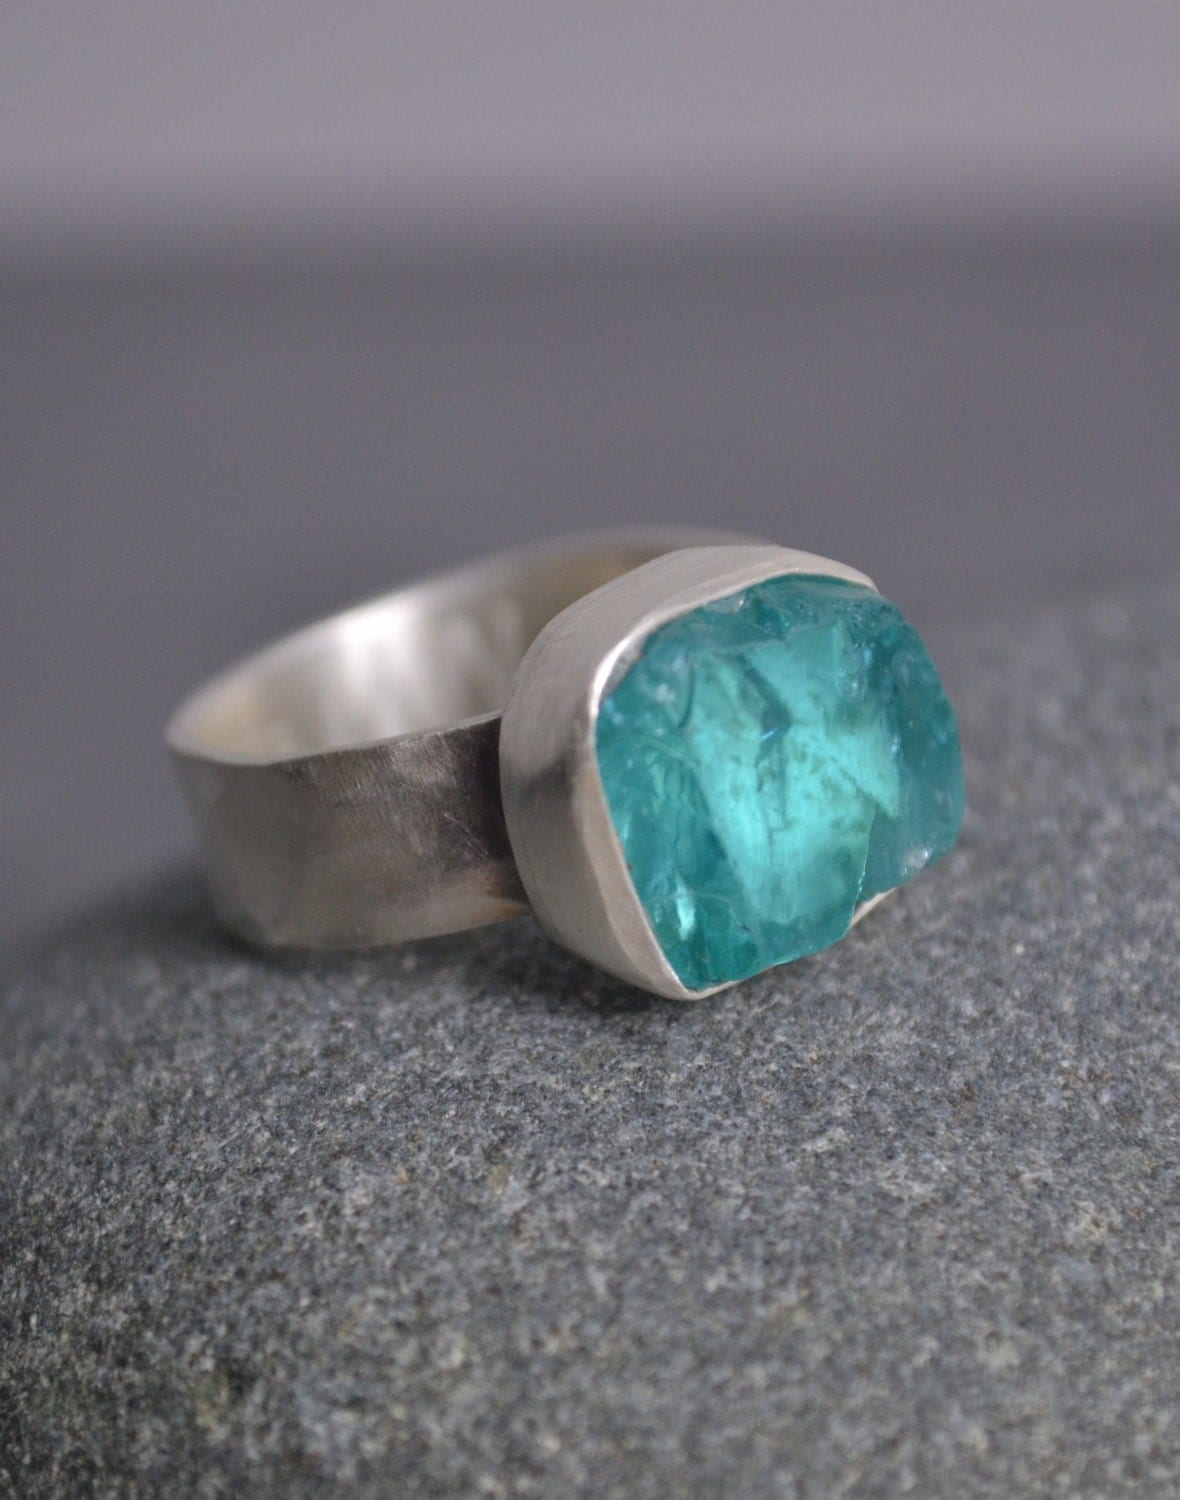 Raw Apatite Ring Neon Blue Color Size 8 Ring Raw Apatite. Matau Necklace. Soft Wedding Rings. Corded Bracelet. 24k Gold Bracelet. Nautical Engagement Rings. Rfid Bracelet. Hindi Bracelet. 300 Dollar Engagement Rings